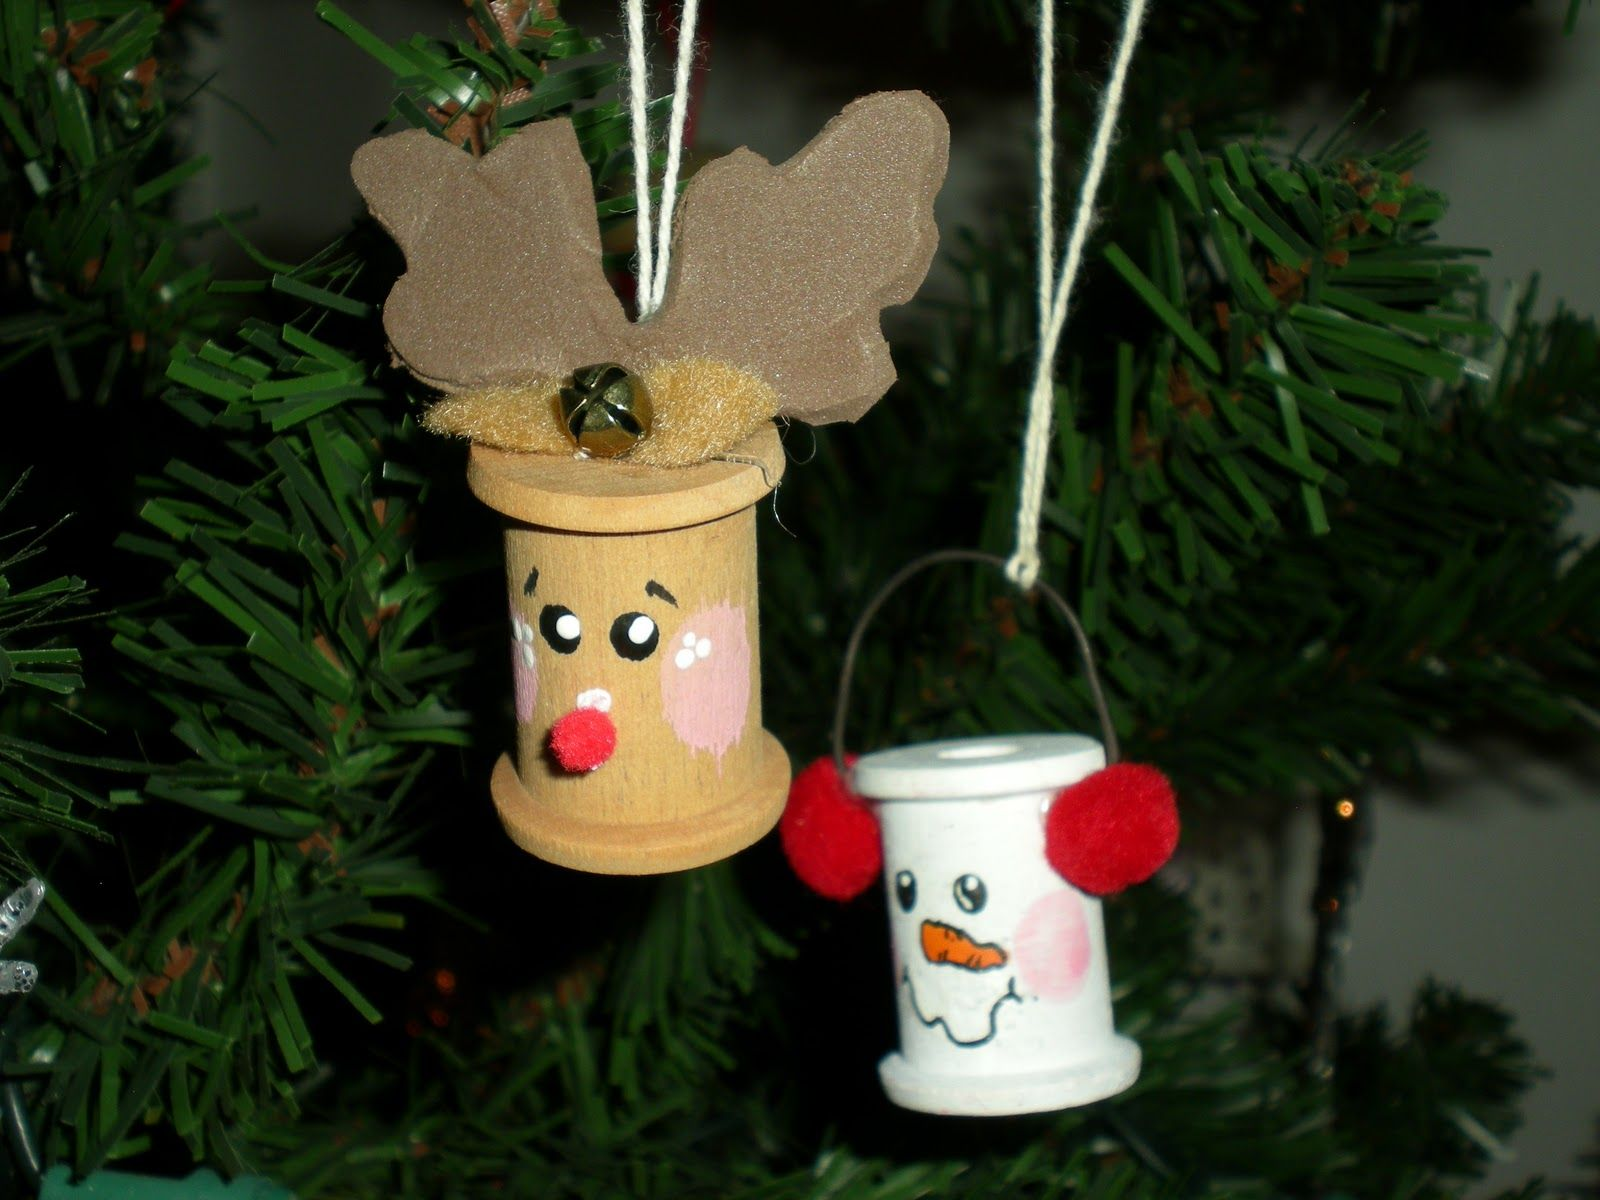 Spool Ornaments Homemade Christmas Crafts Christmas Ornament Crafts Diy Christmas Ornaments